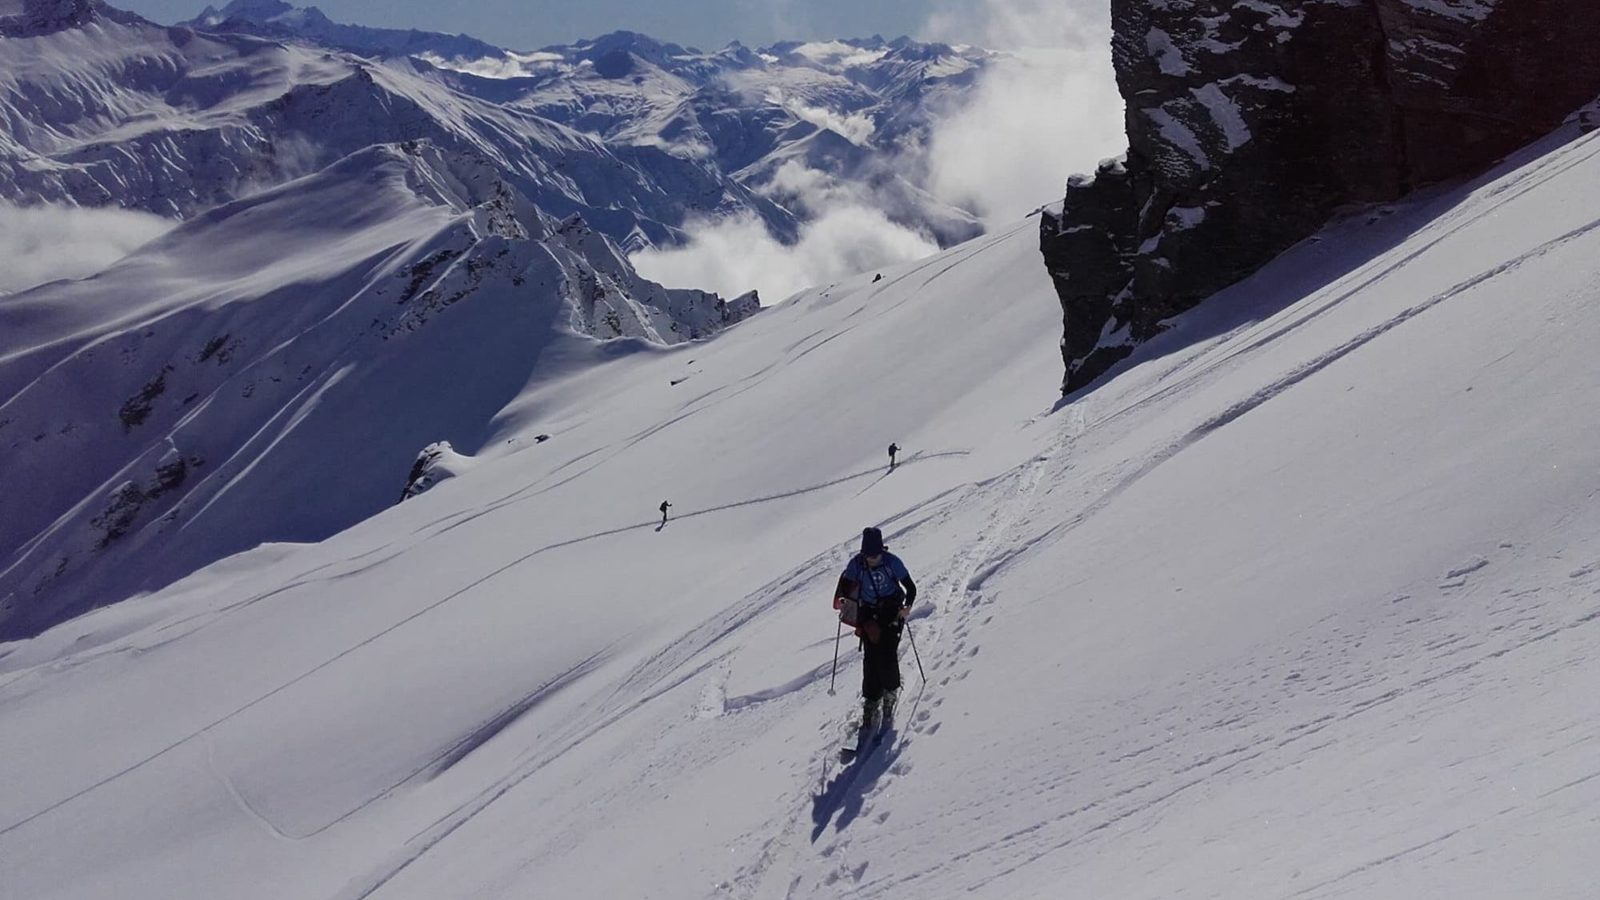 Treble Cone Backcountry Ski Touring